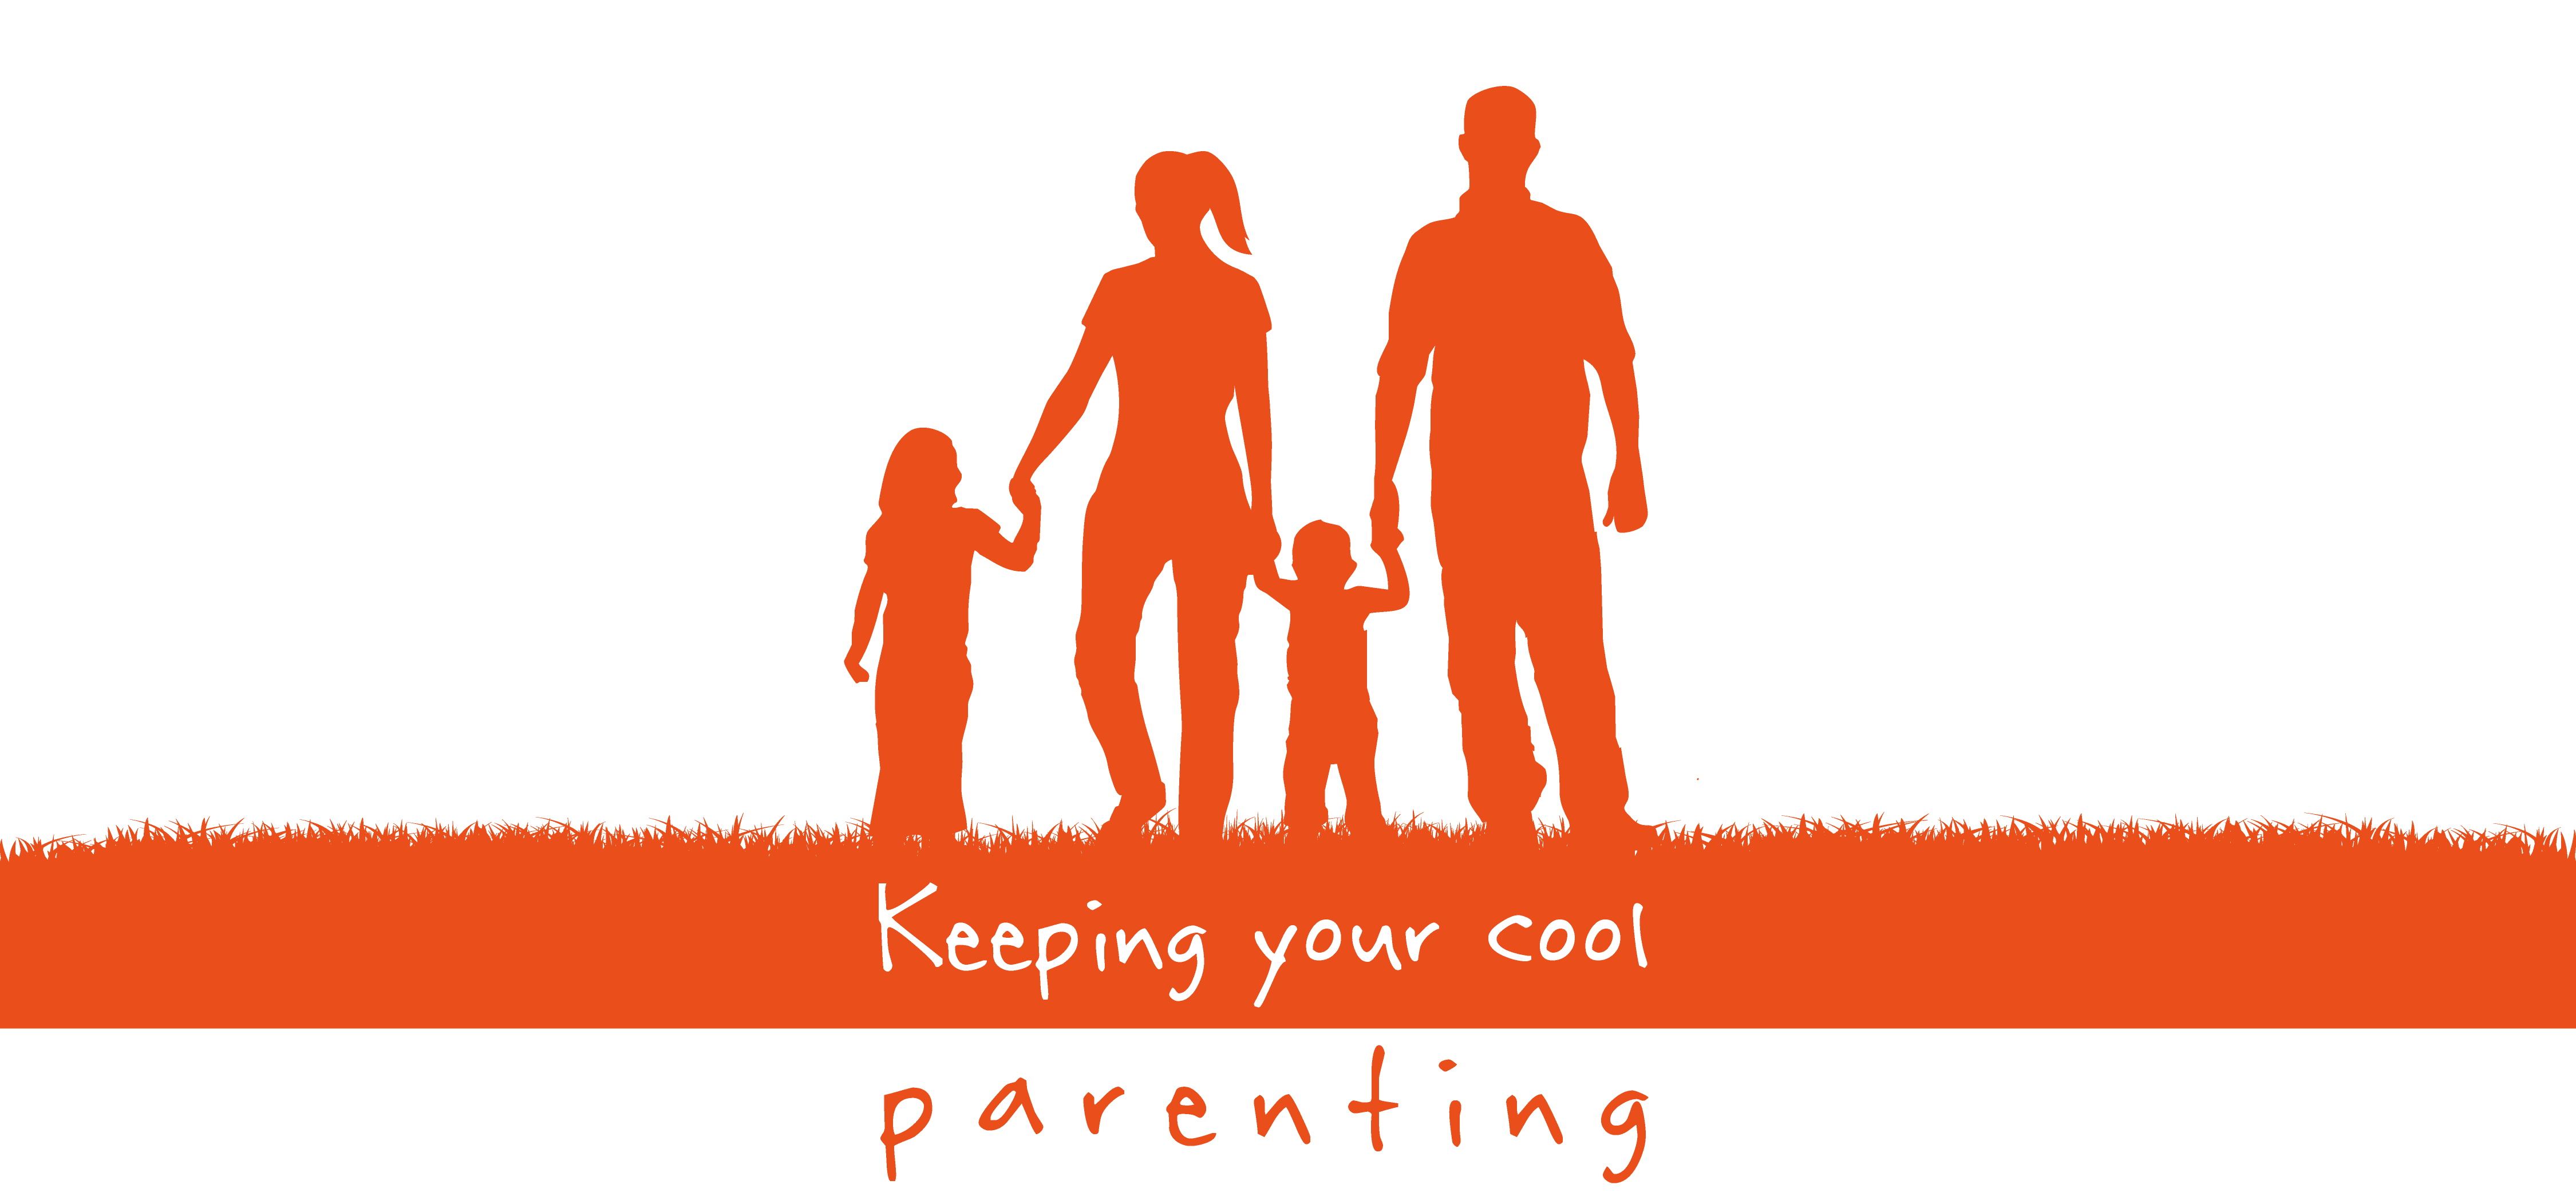 Keeping your cool parenting